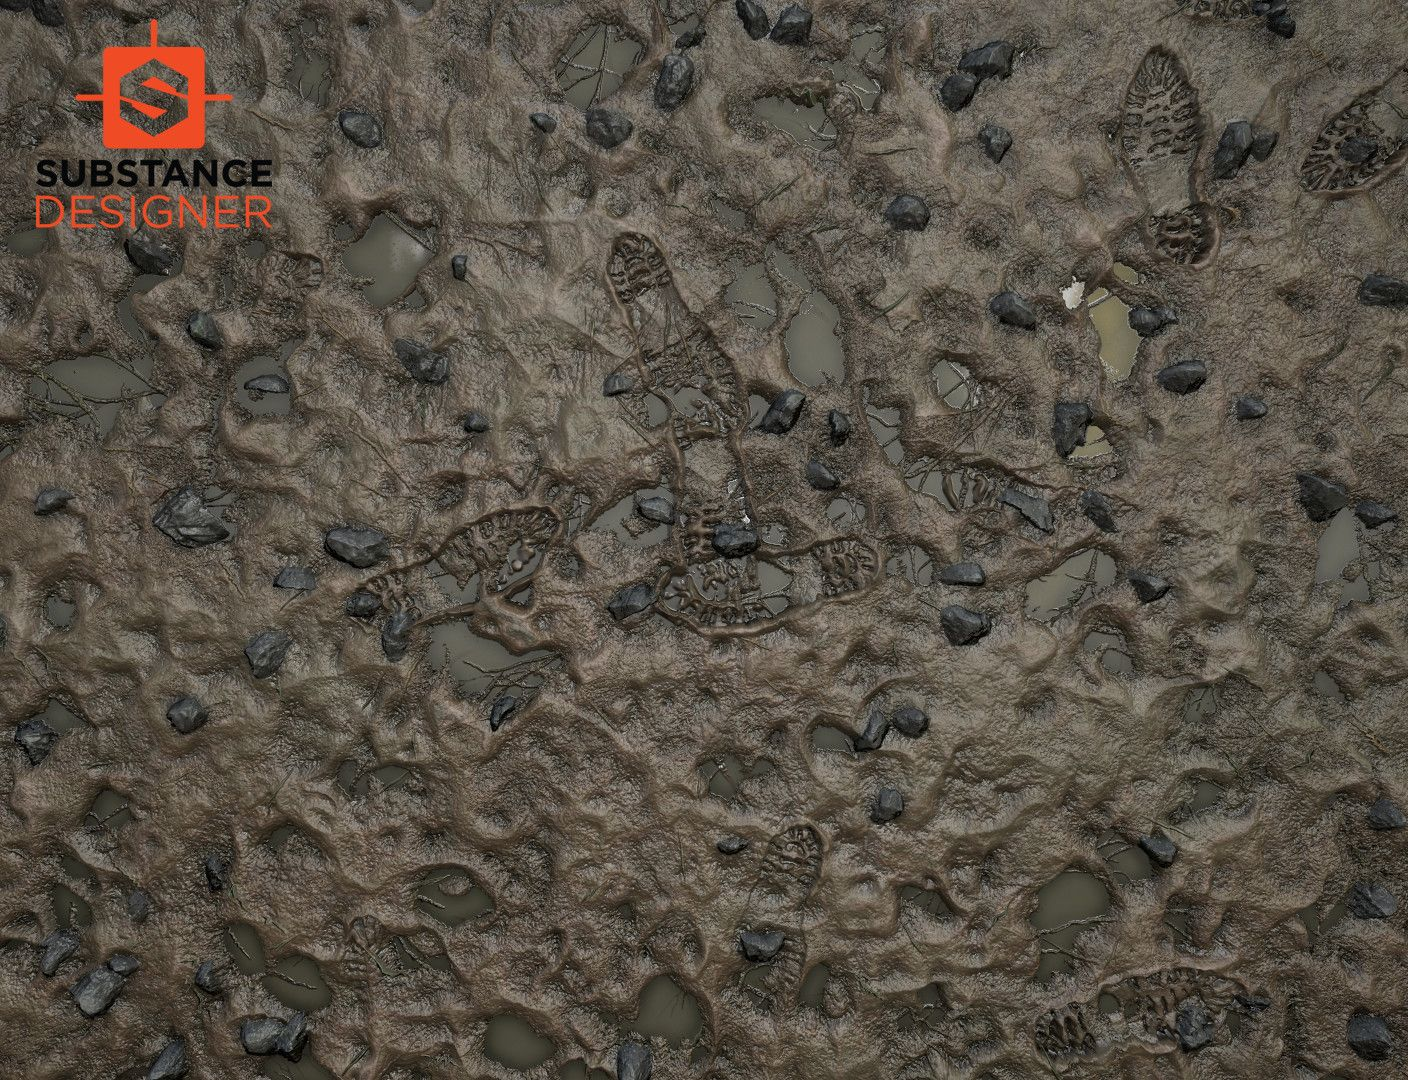 This texture of the mud created in the substance designer for my